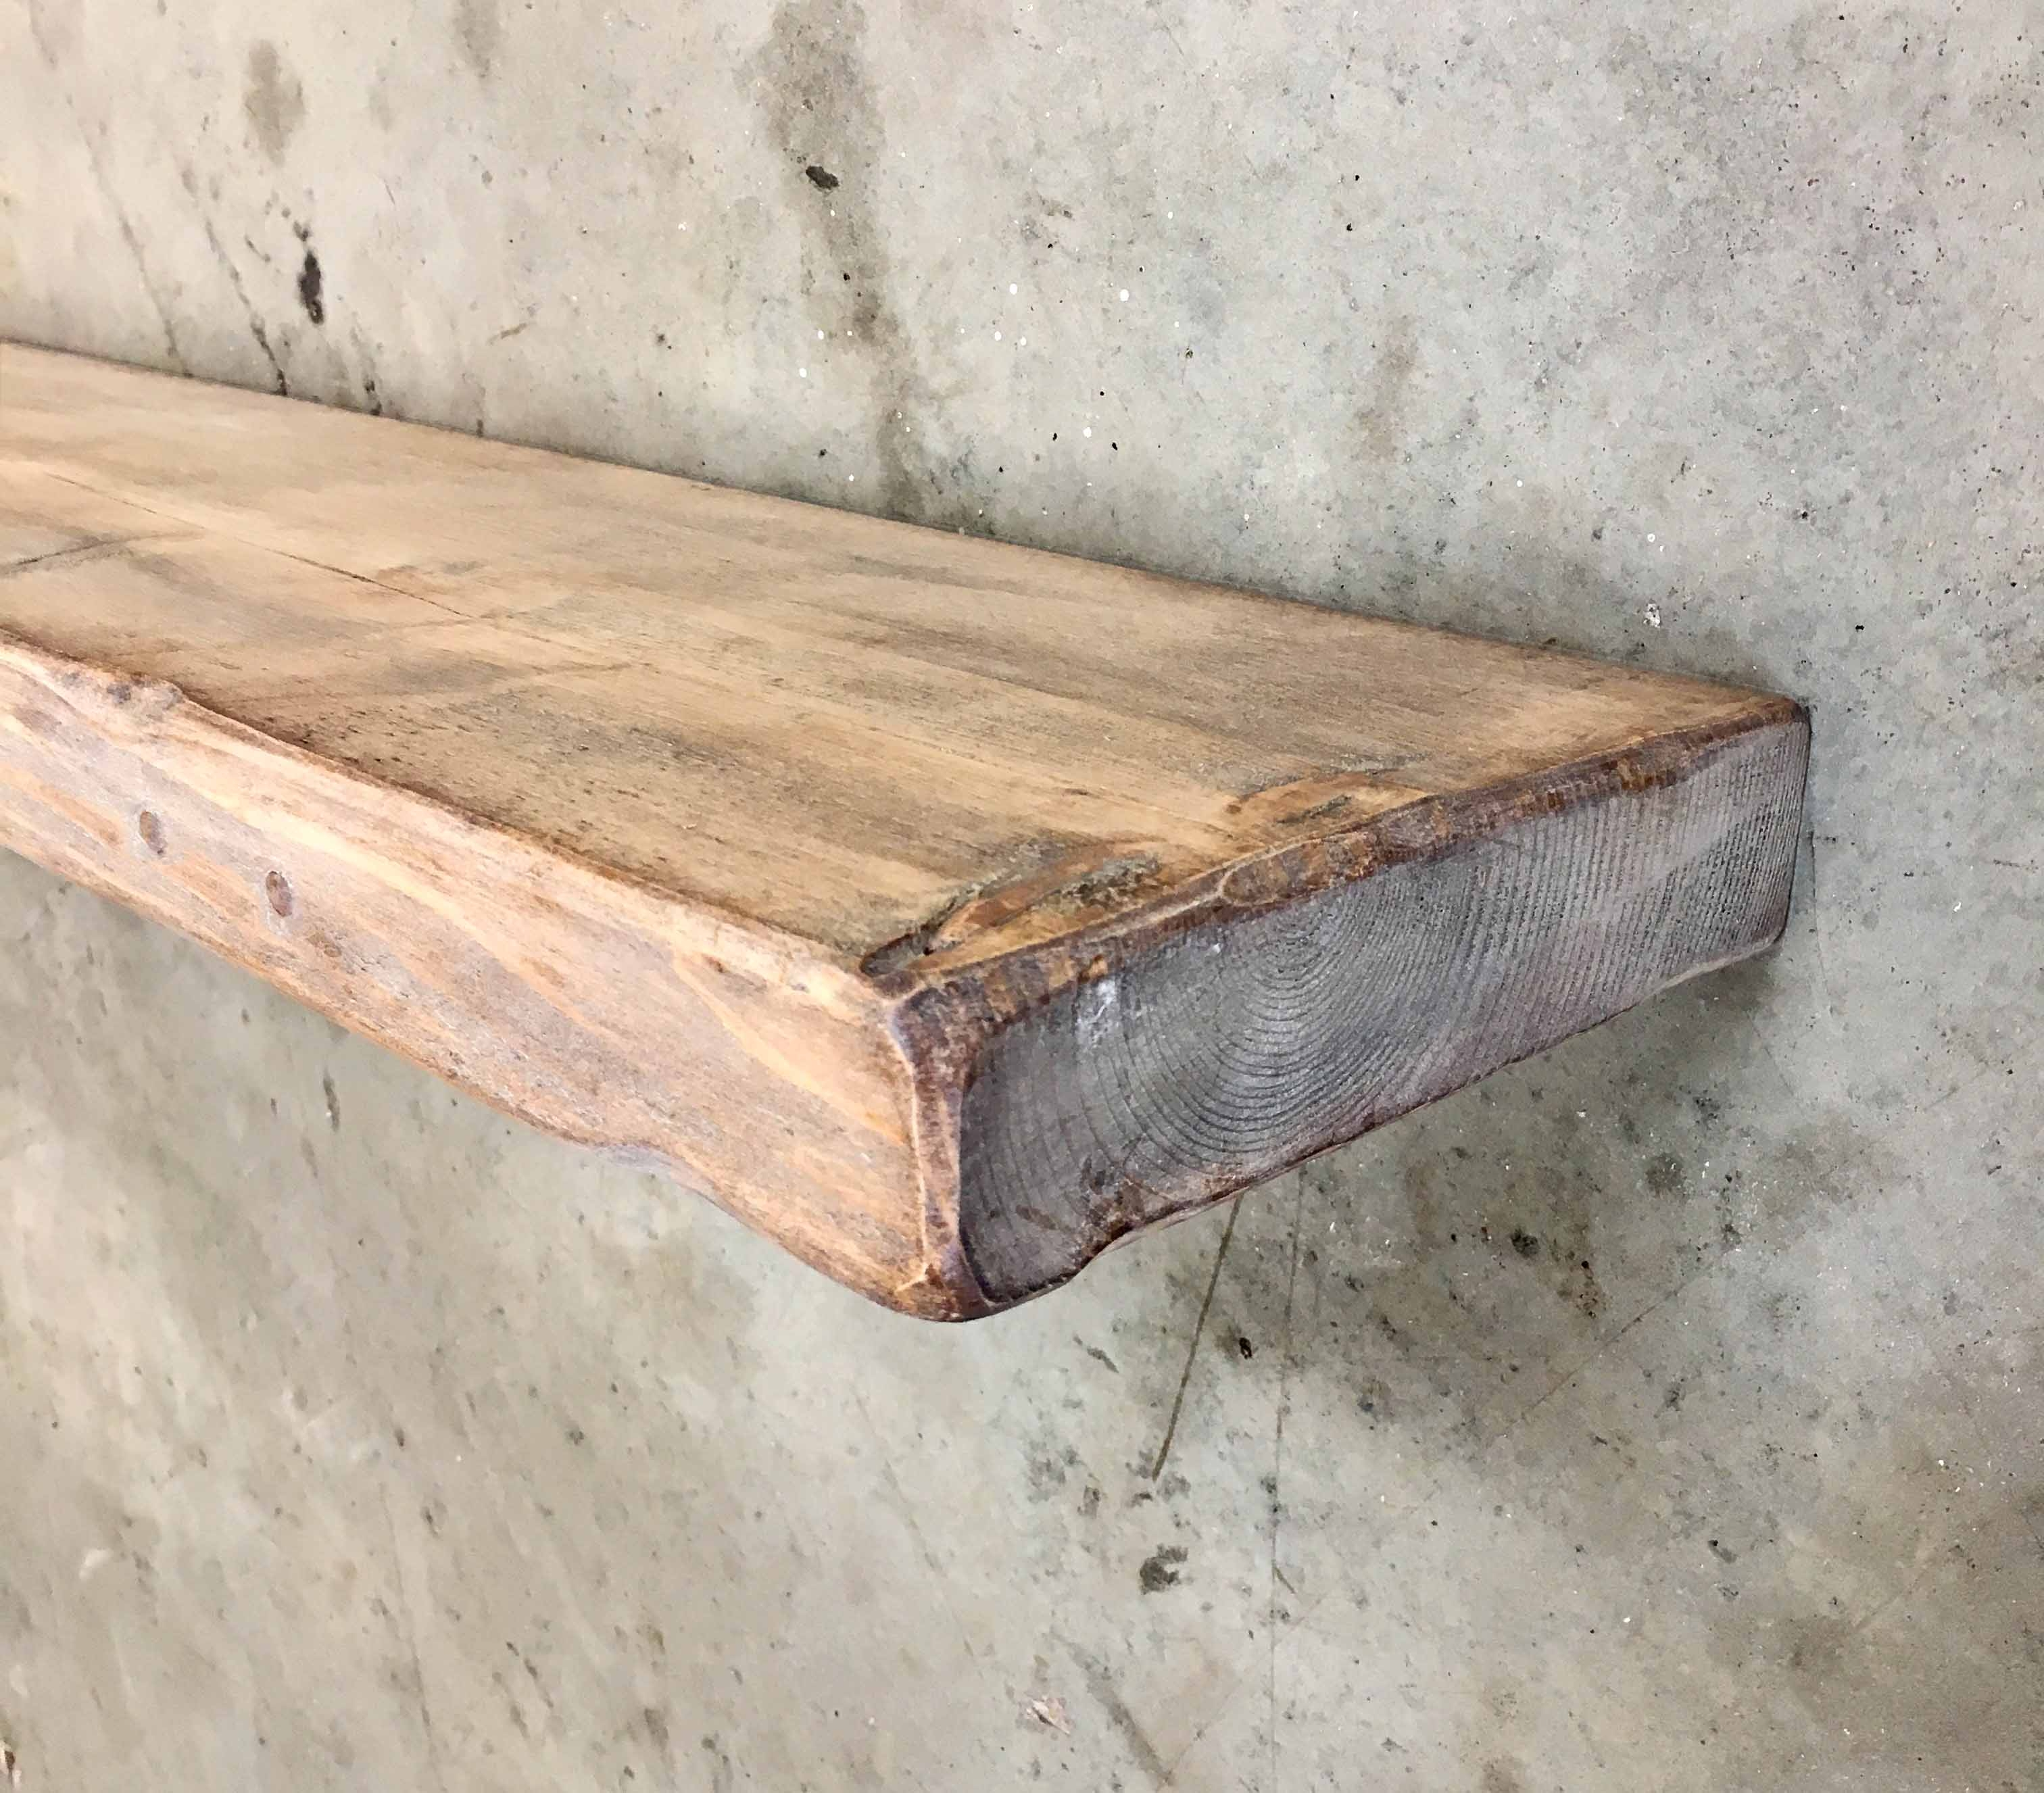 Shab Chic Rustic Chunky Floating Shelf 22cm X 5cm Ben Simpson With Regard To 50cm Floating Shelf (View 15 of 15)